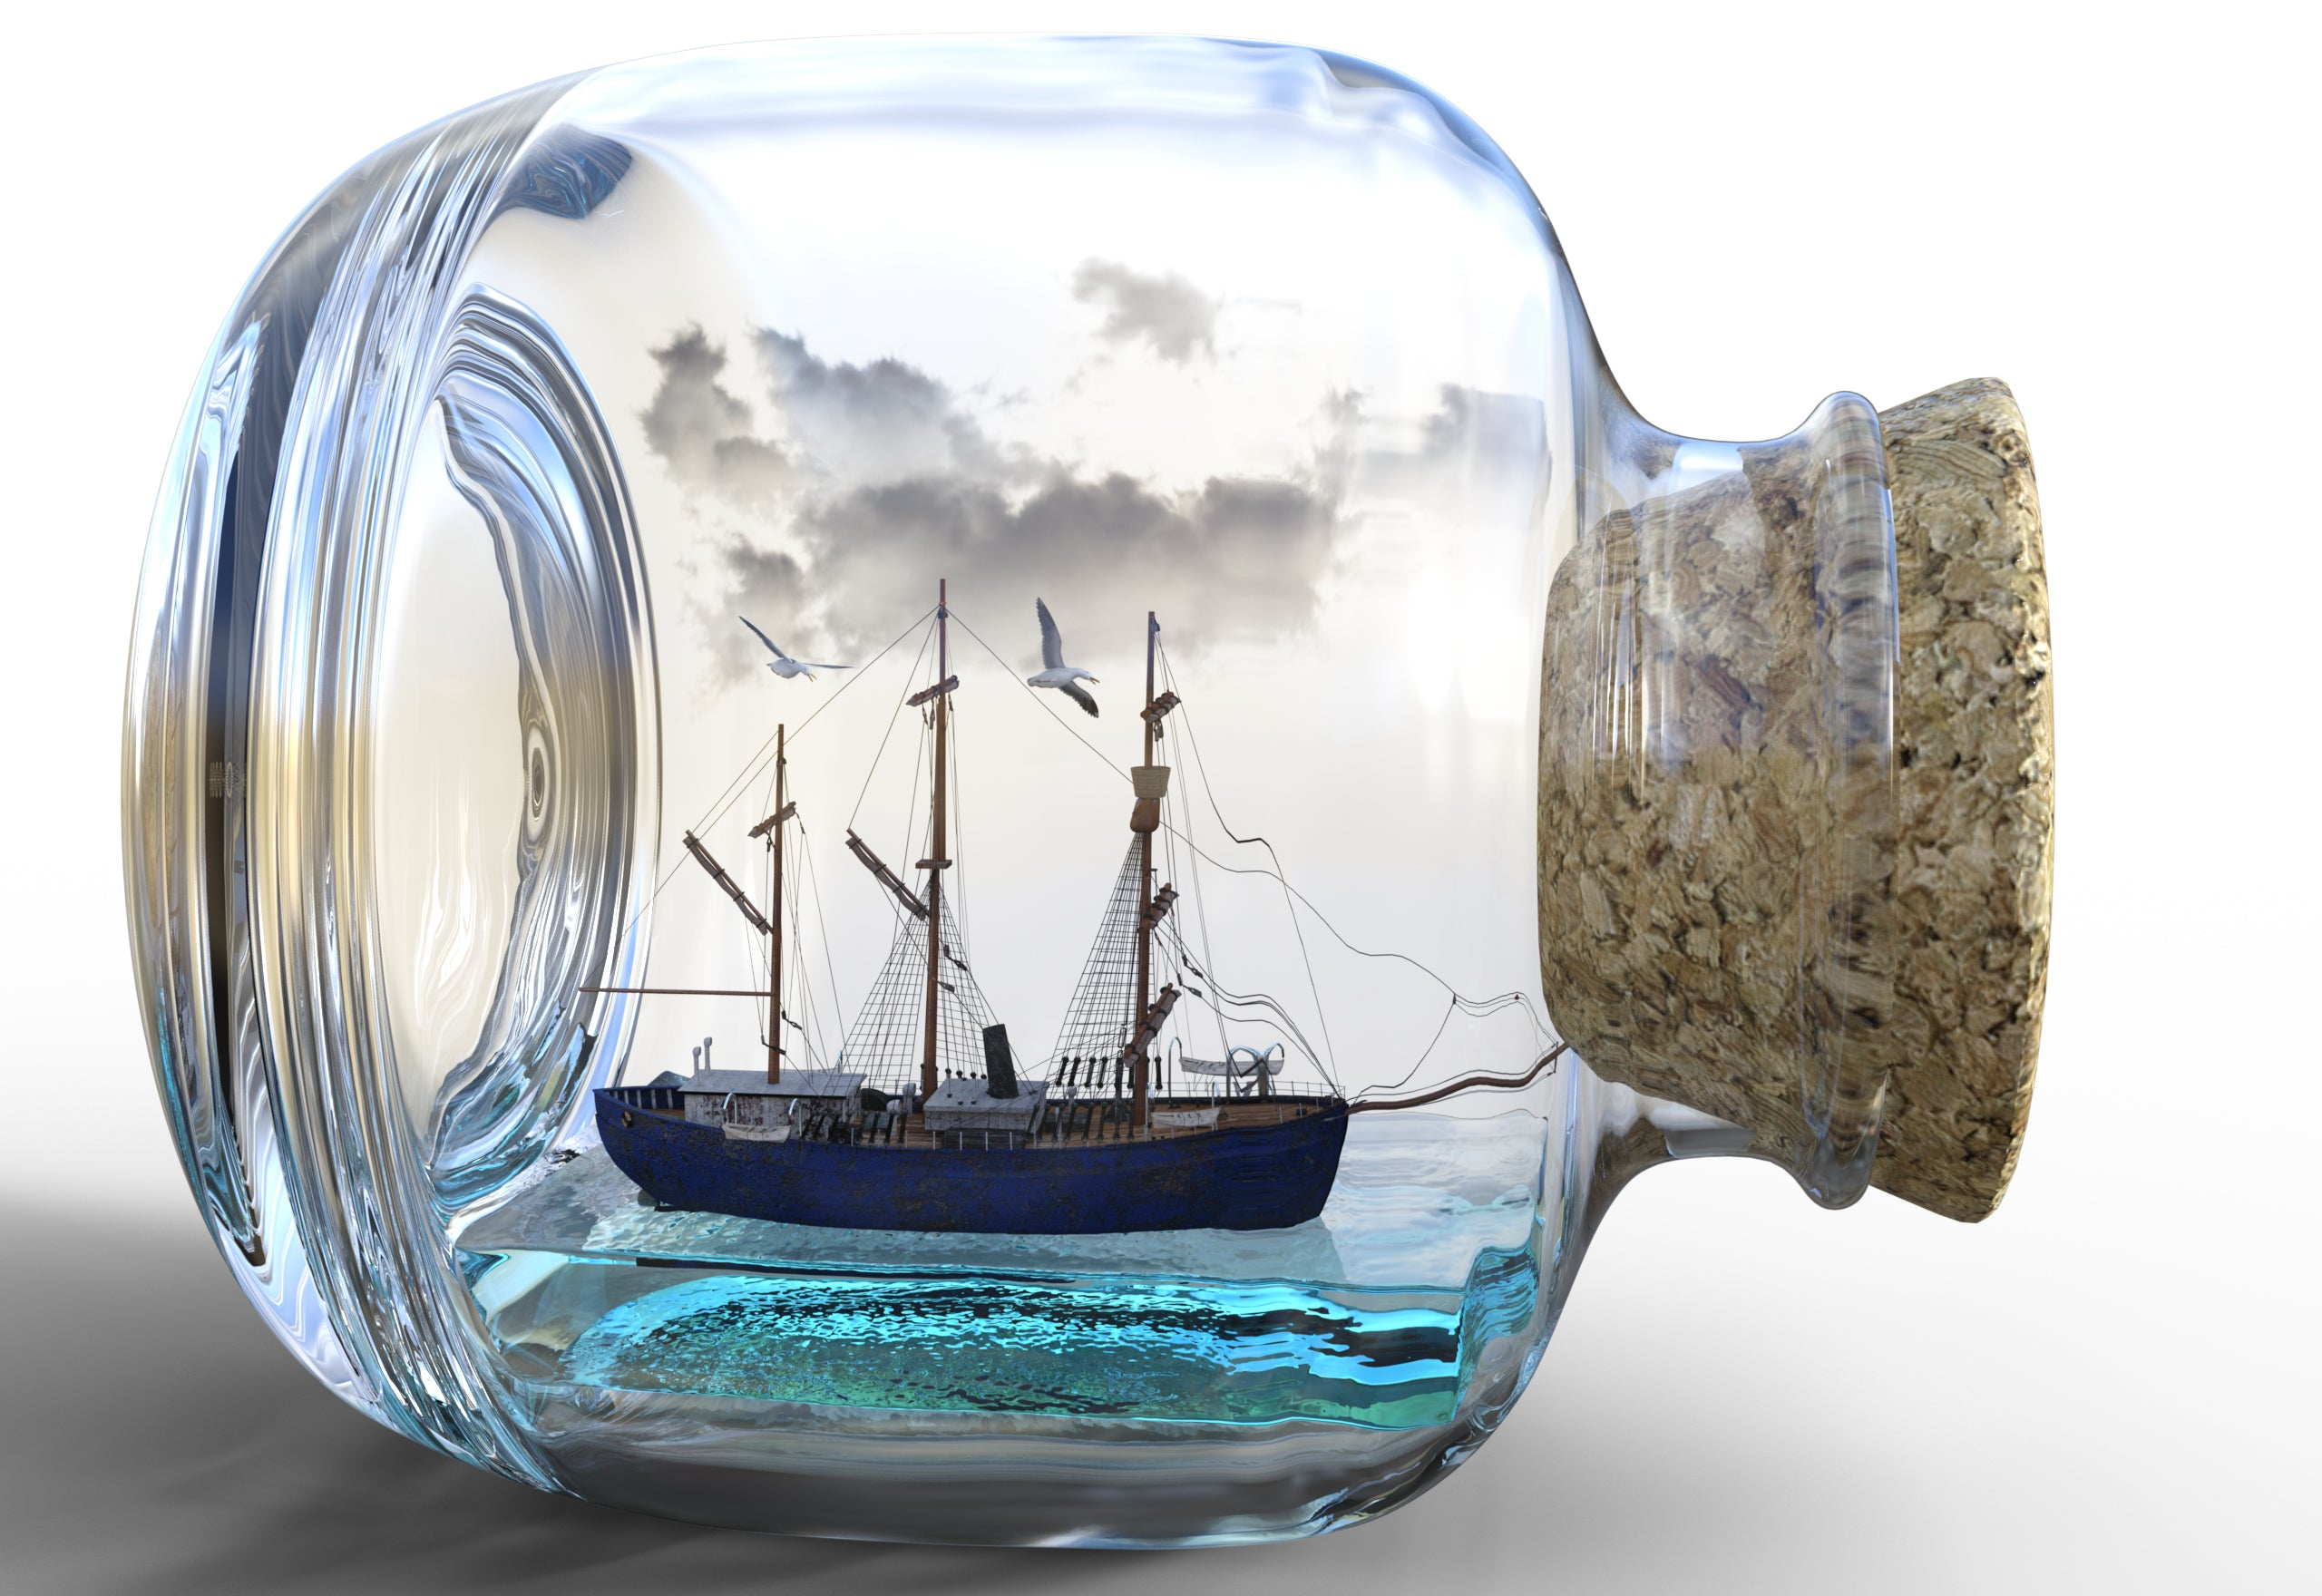 Glass Boat in a Bottle